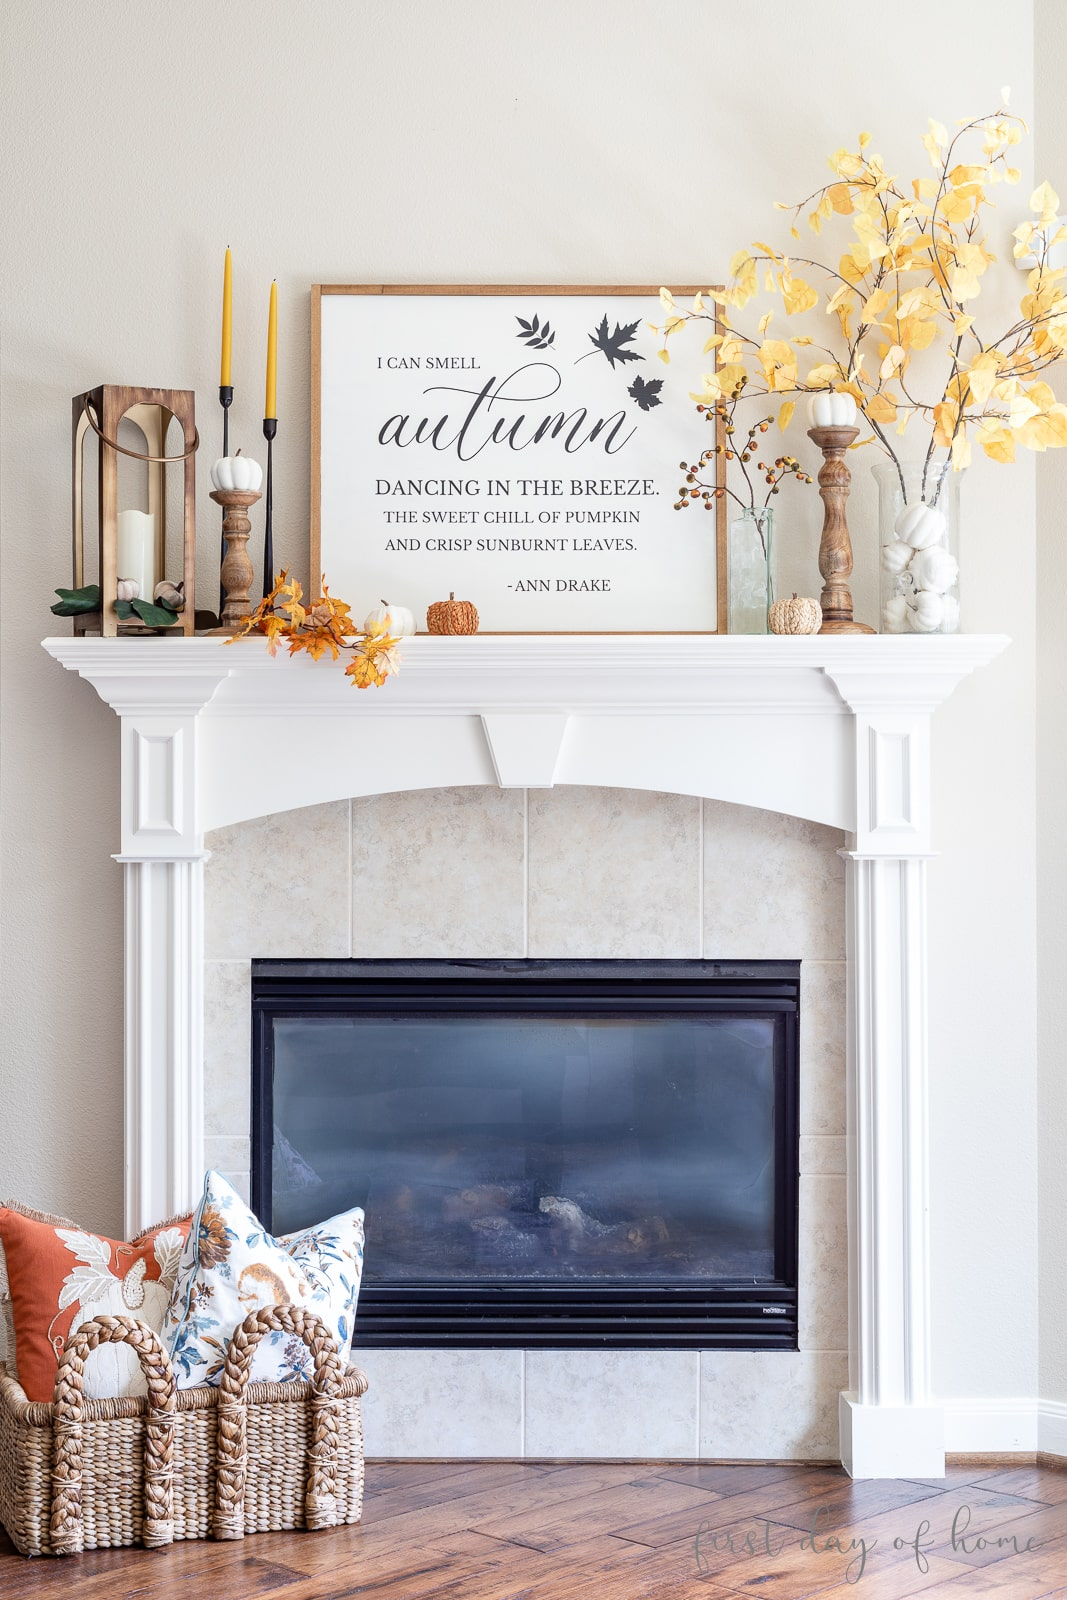 Fall farmhouse mantel decor with faux florals and DIY farmhouse sign in center